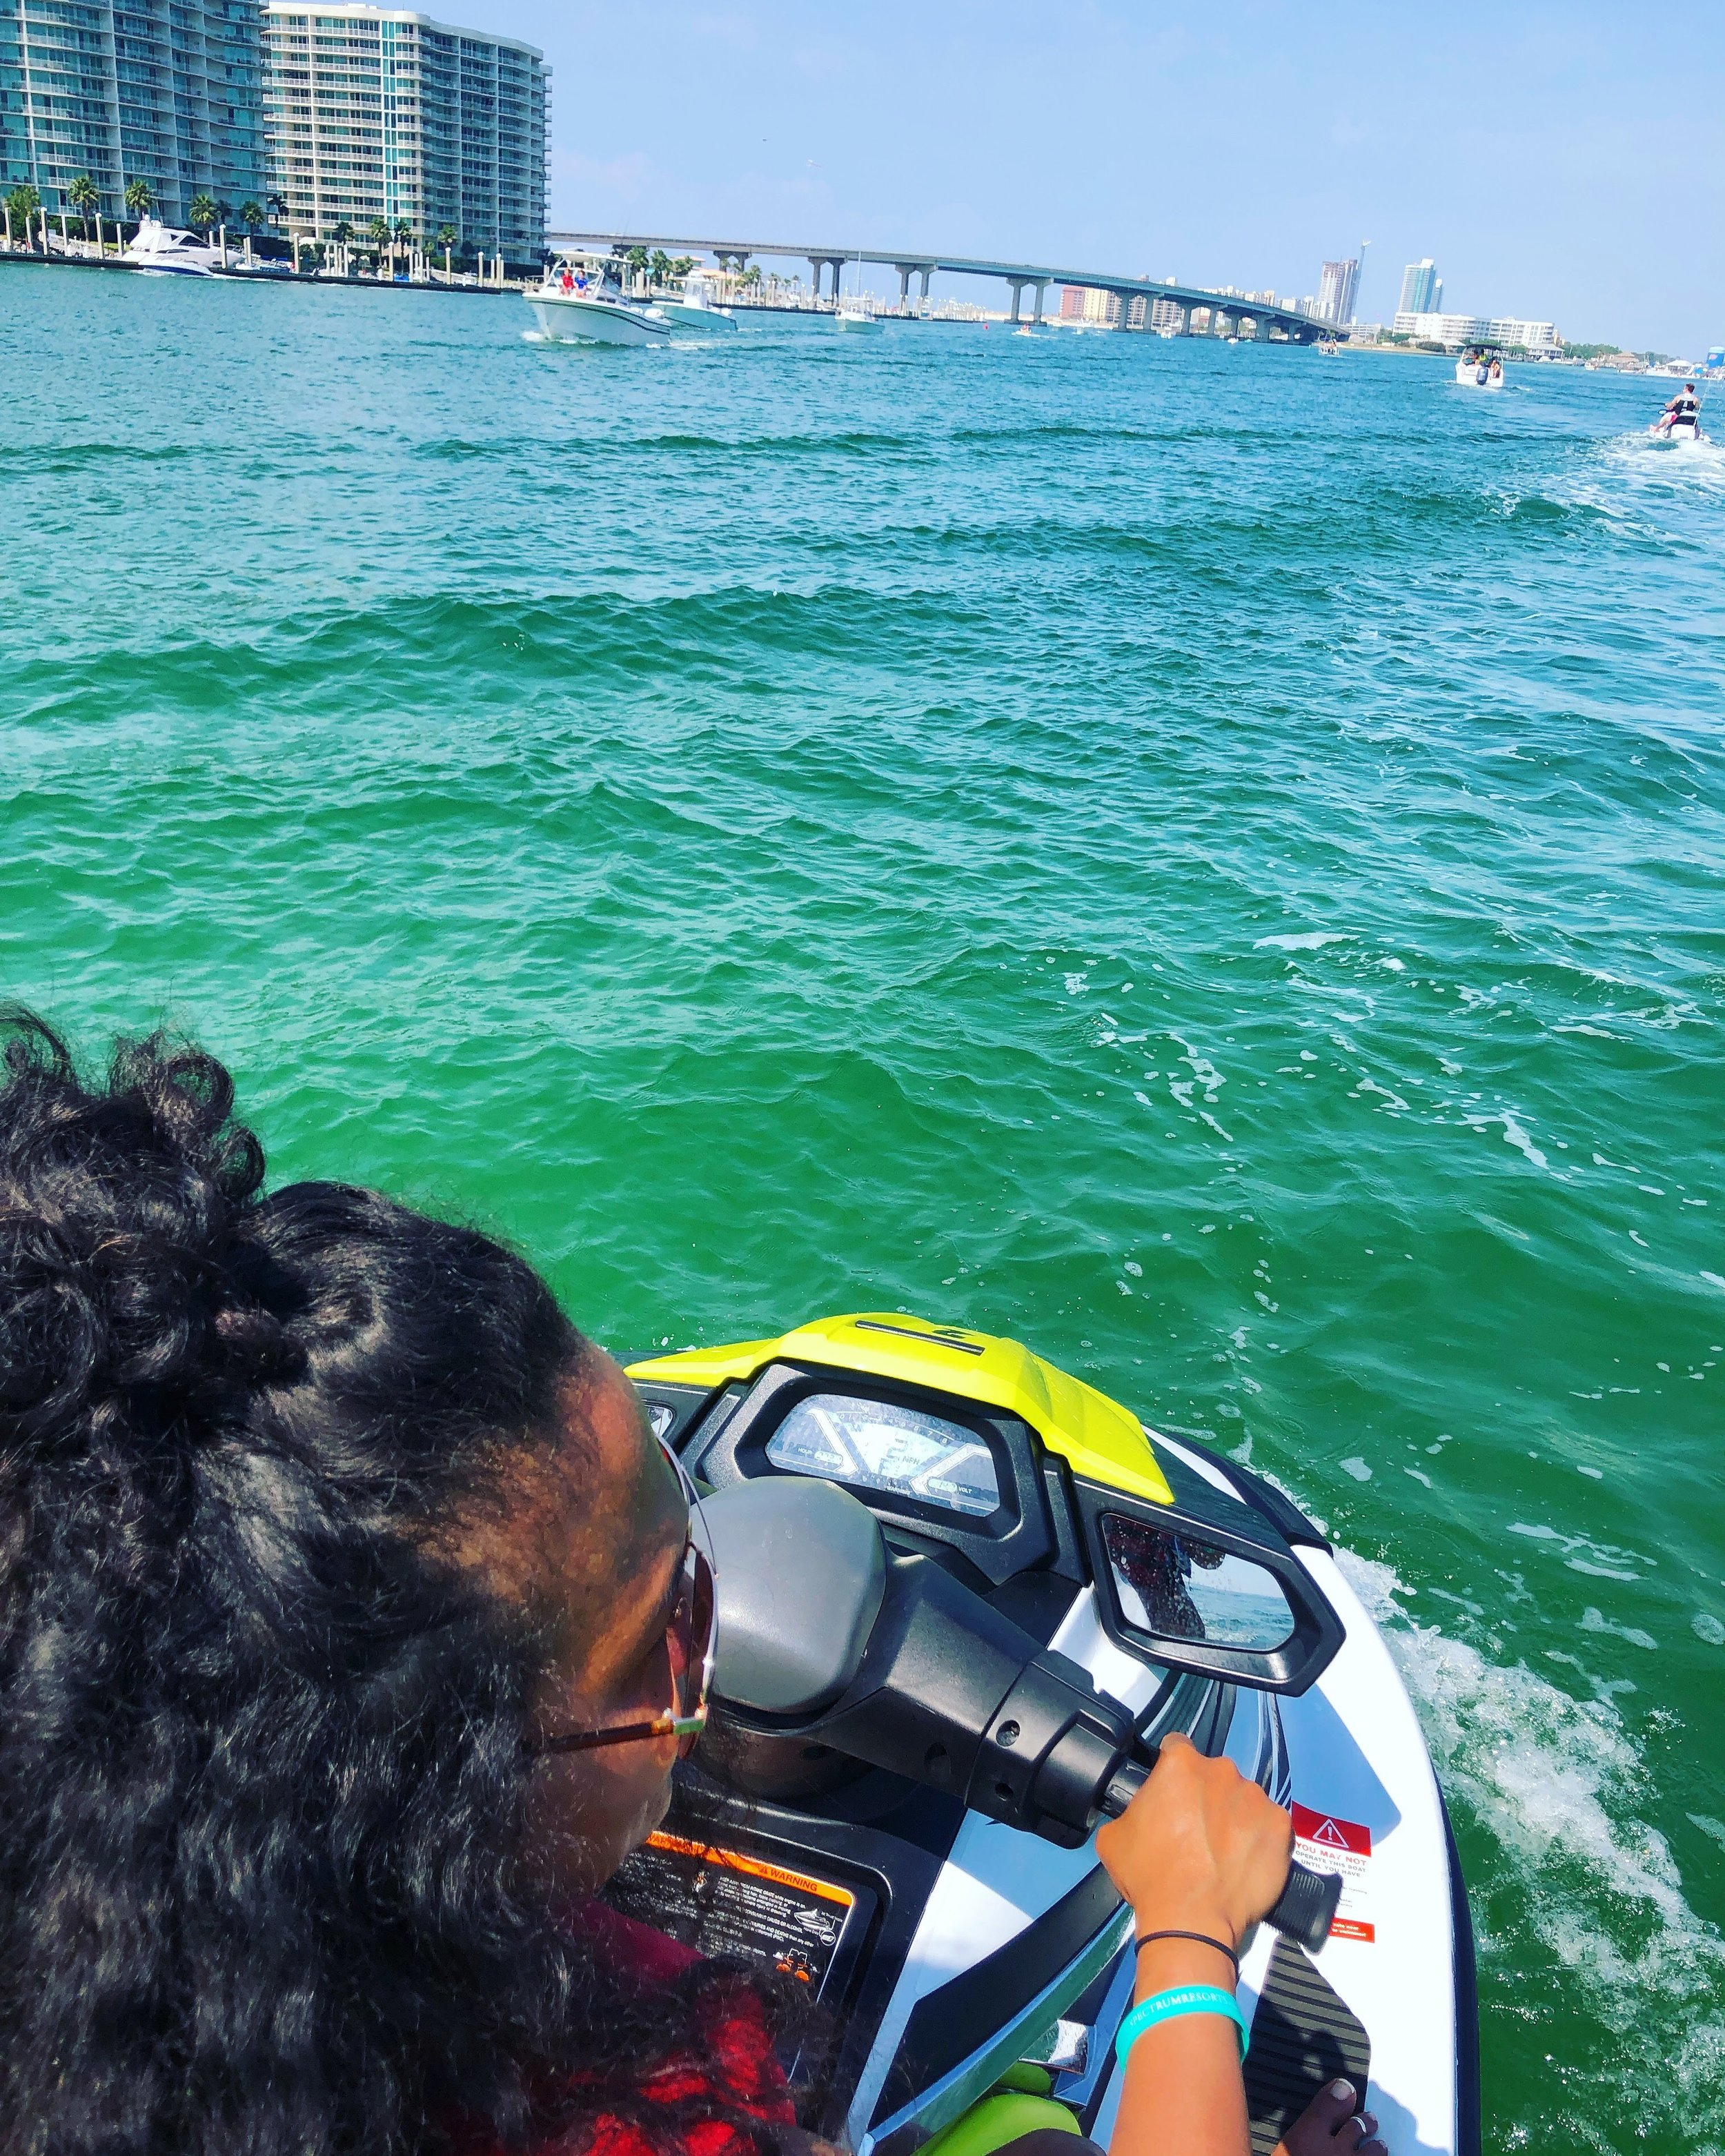 Schedule your beach activities before you head down! We did this jet ski rental by  booking here …and fuel was included!